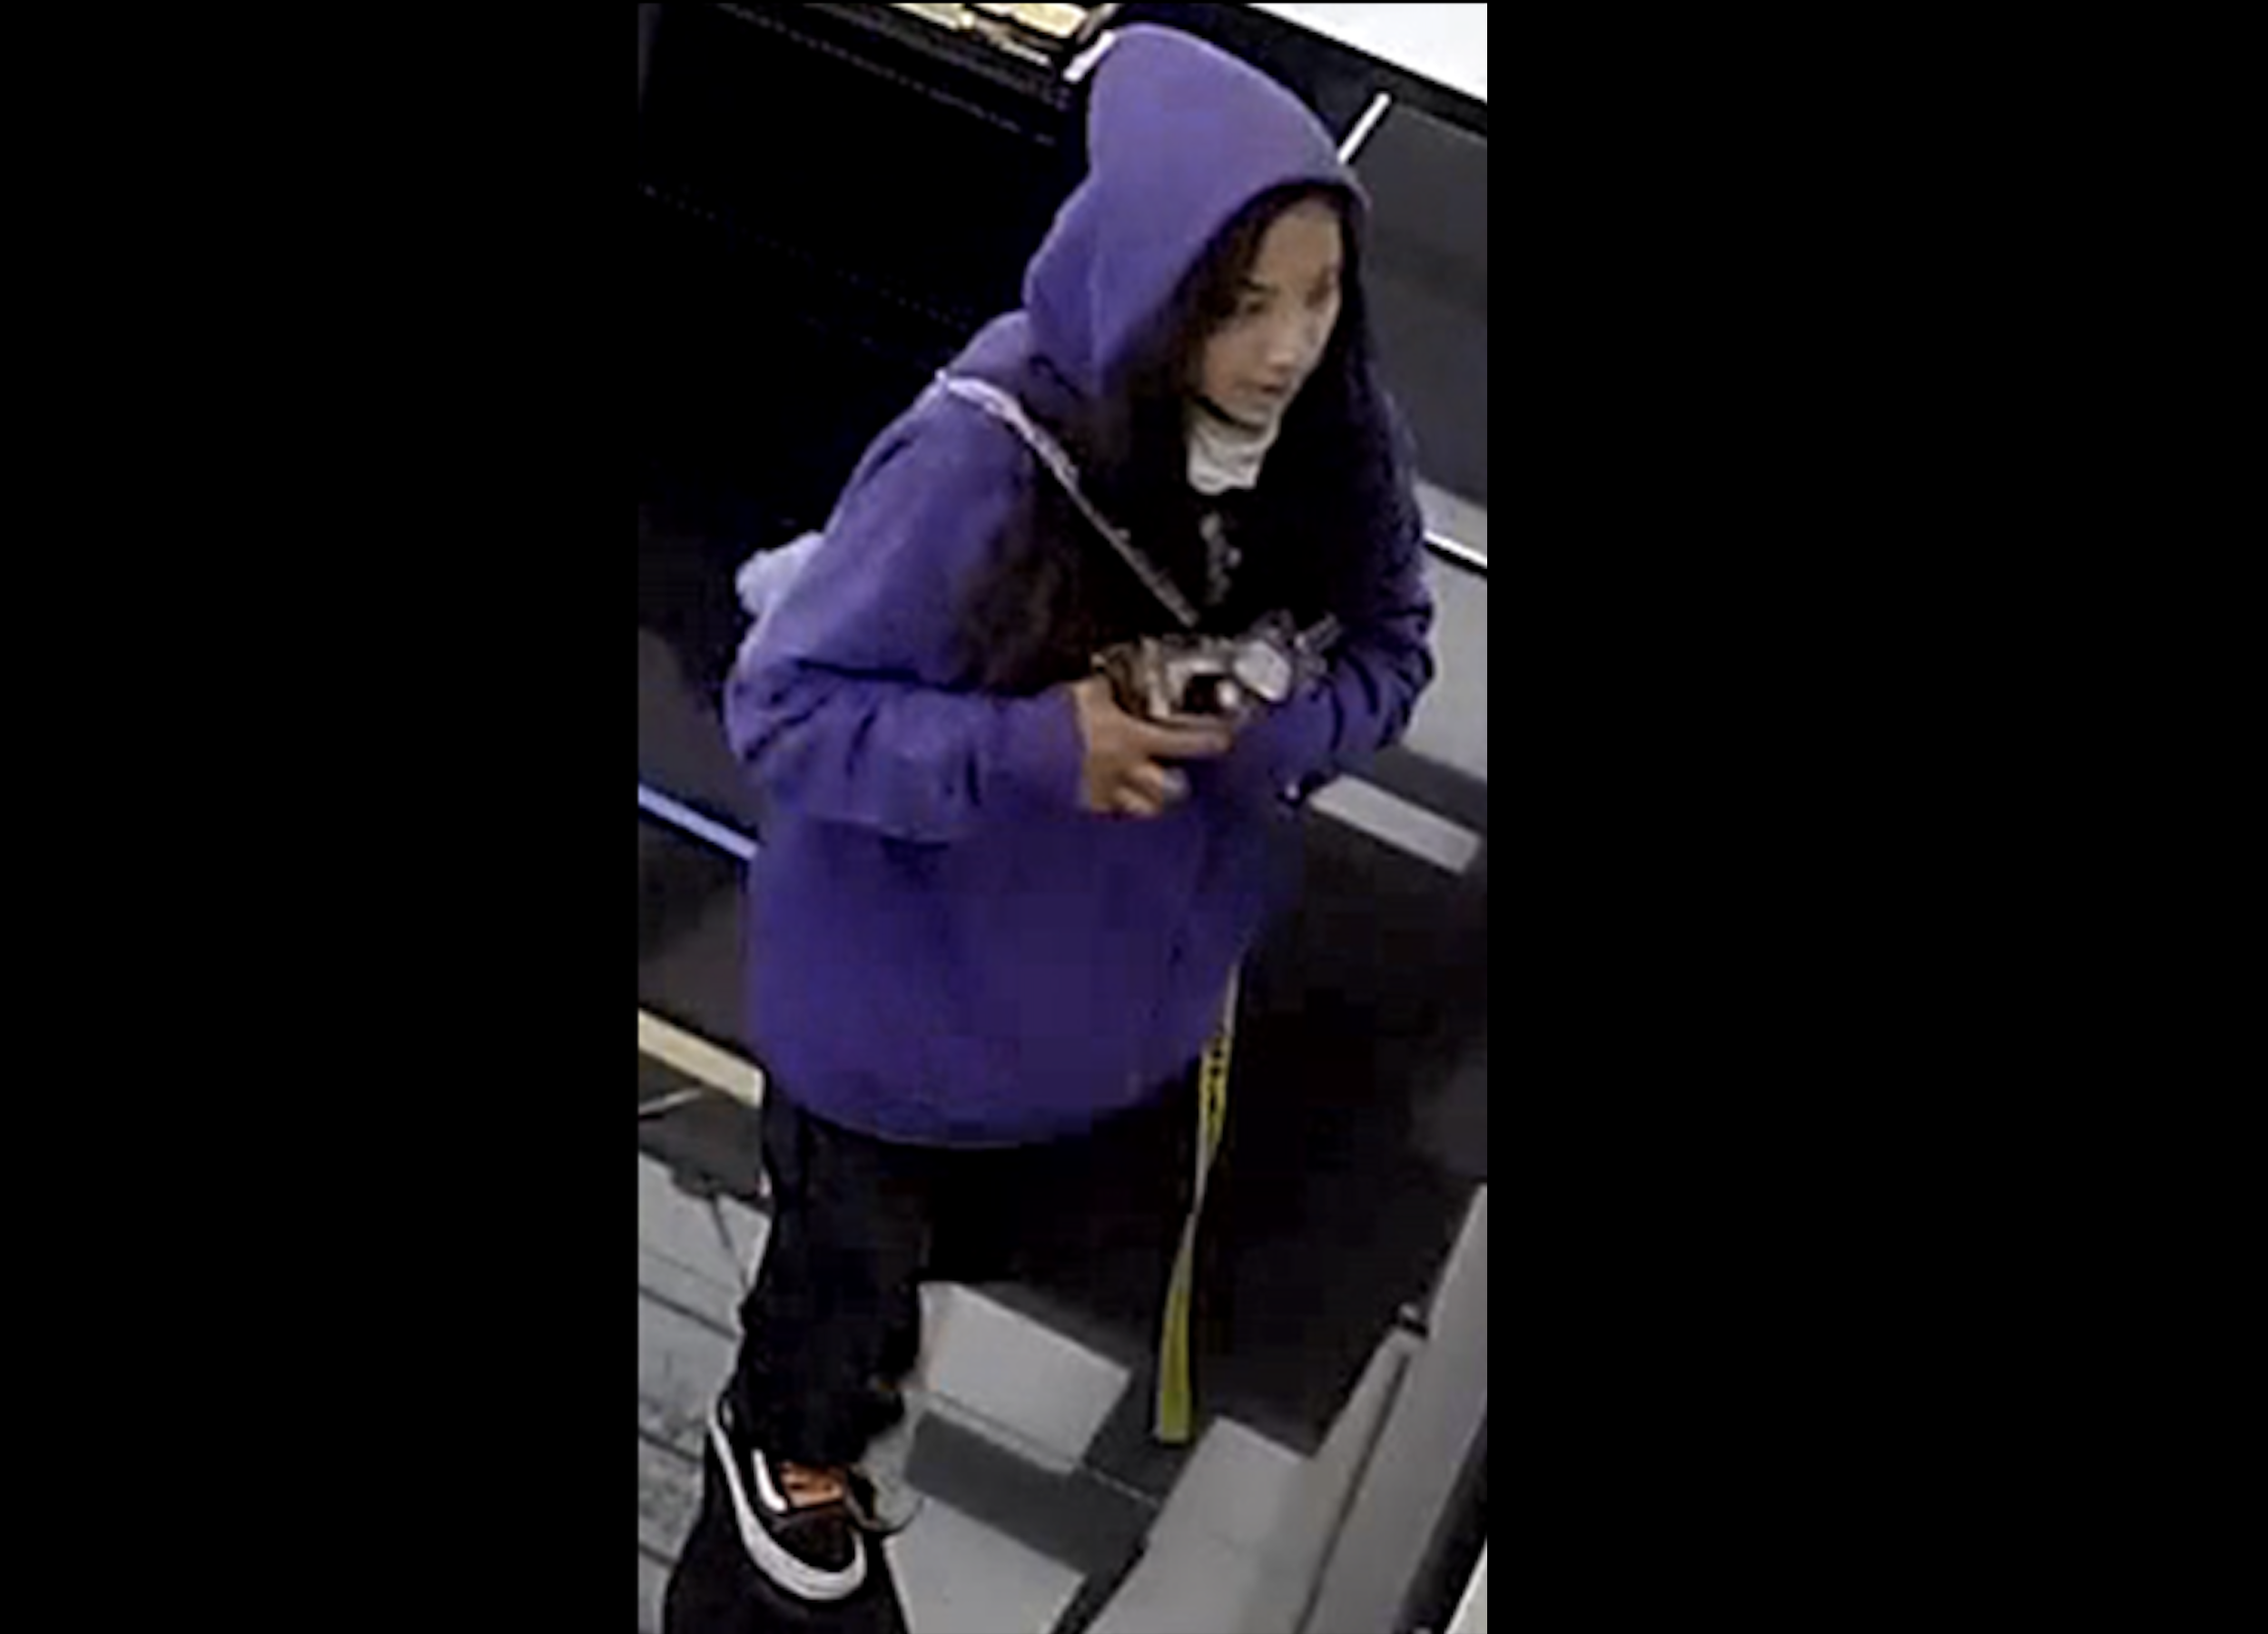 Chicago police are seeking to identify a person wanted for burglary of a retail store May 31, 2020, in the First block of East Oak Street.